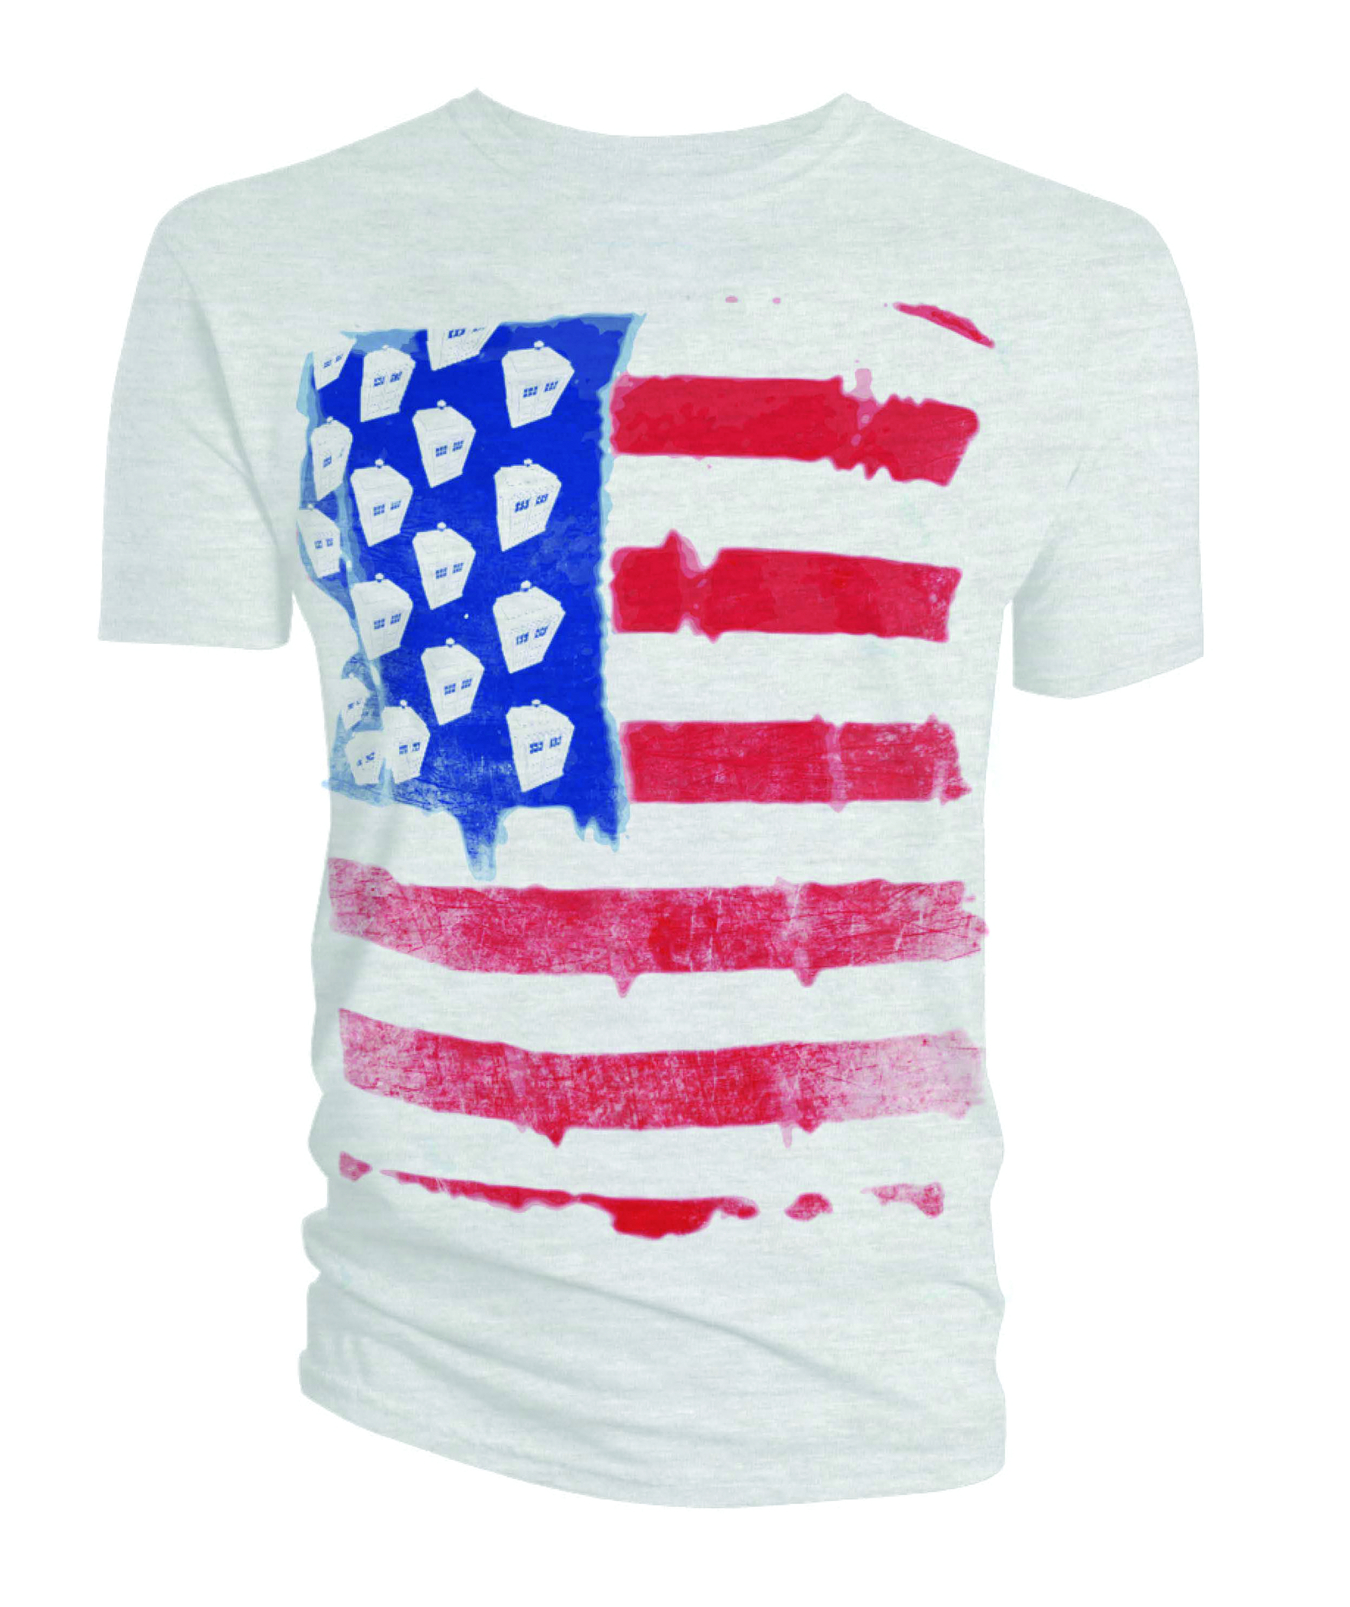 DOCTOR WHO STARS AND STRIPES T/S SM